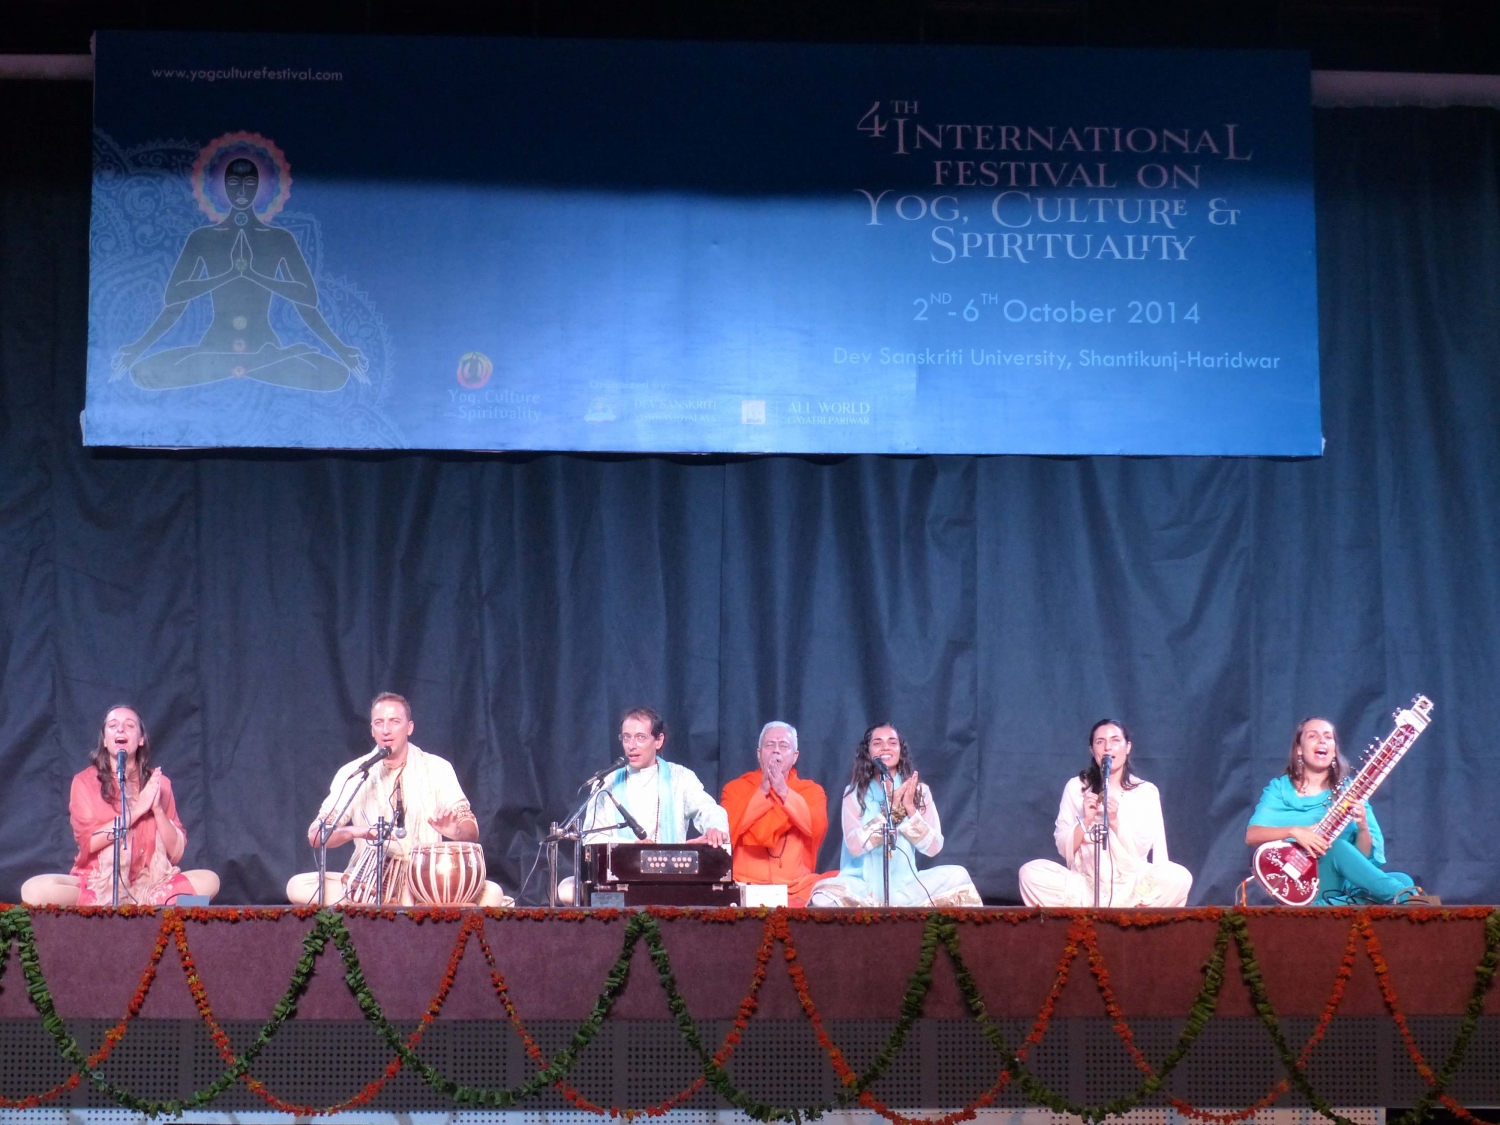 Participação da Confederação Portuguesa do Yoga no 4º International Festival on Yoga, Culture and Spirituality - Shántikunj Áshrama, Haridvar, Índia - 2014, Outubro, 2 a 6